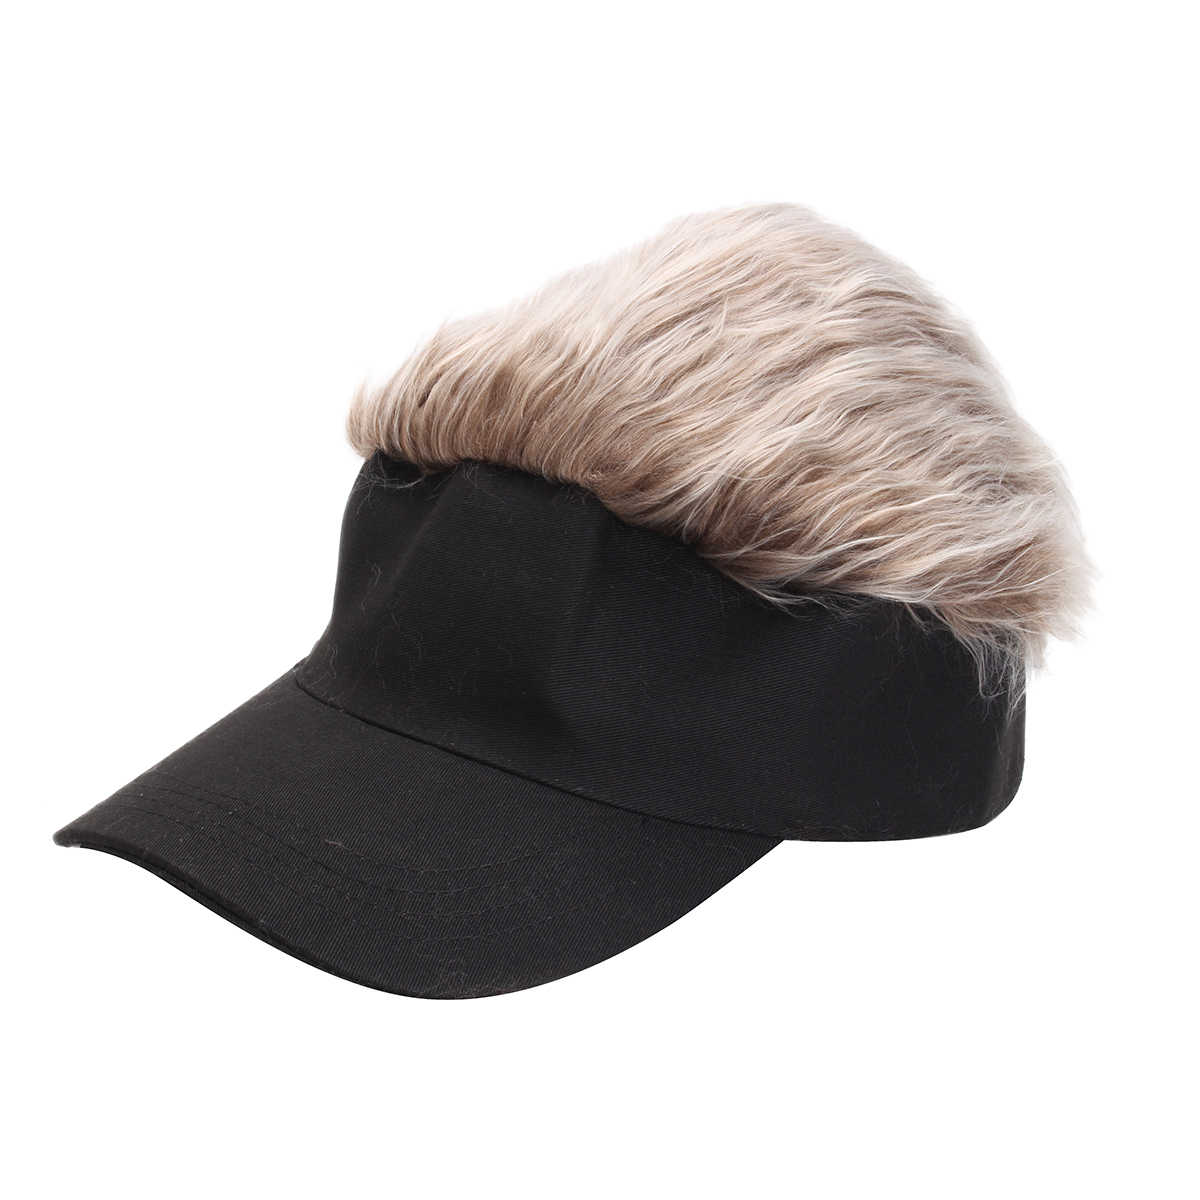 e0b923761ea Detail Feedback Questions about Newest Novelty Baseball Cap Wig Cap Women  Men Fake Flair Hair Visor Sun Hat Toupee Funny Hair Snapback Hats Casquette  Cool ...